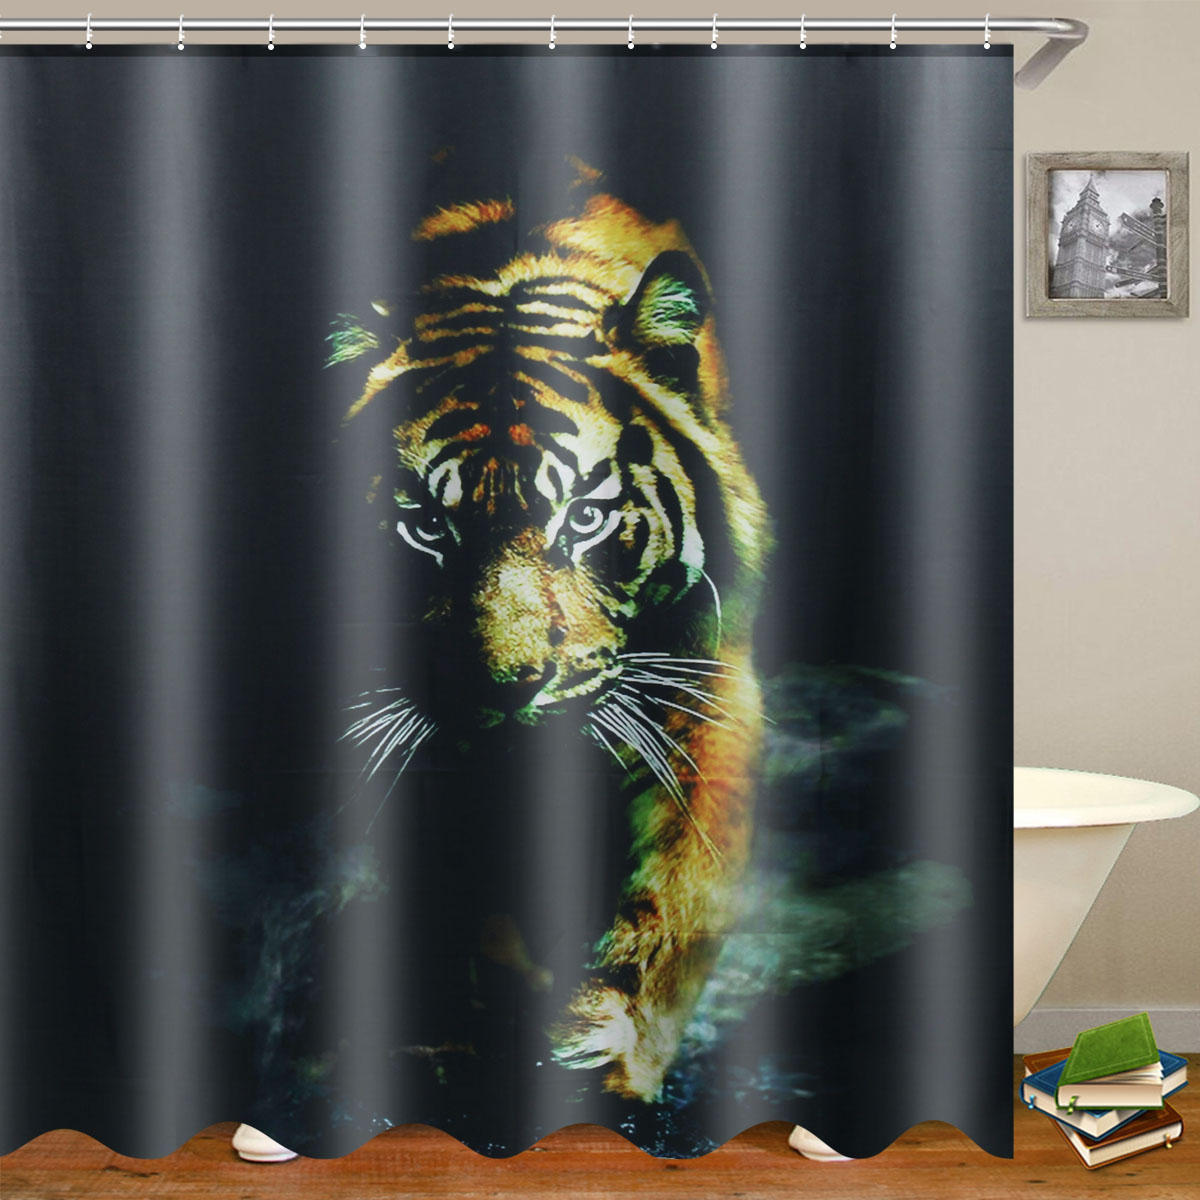 . 72 X 72  Wildlife Animal Nature Decor Tiger Bathroom Decor Shower Curtain  with Plastic Shower Hooks